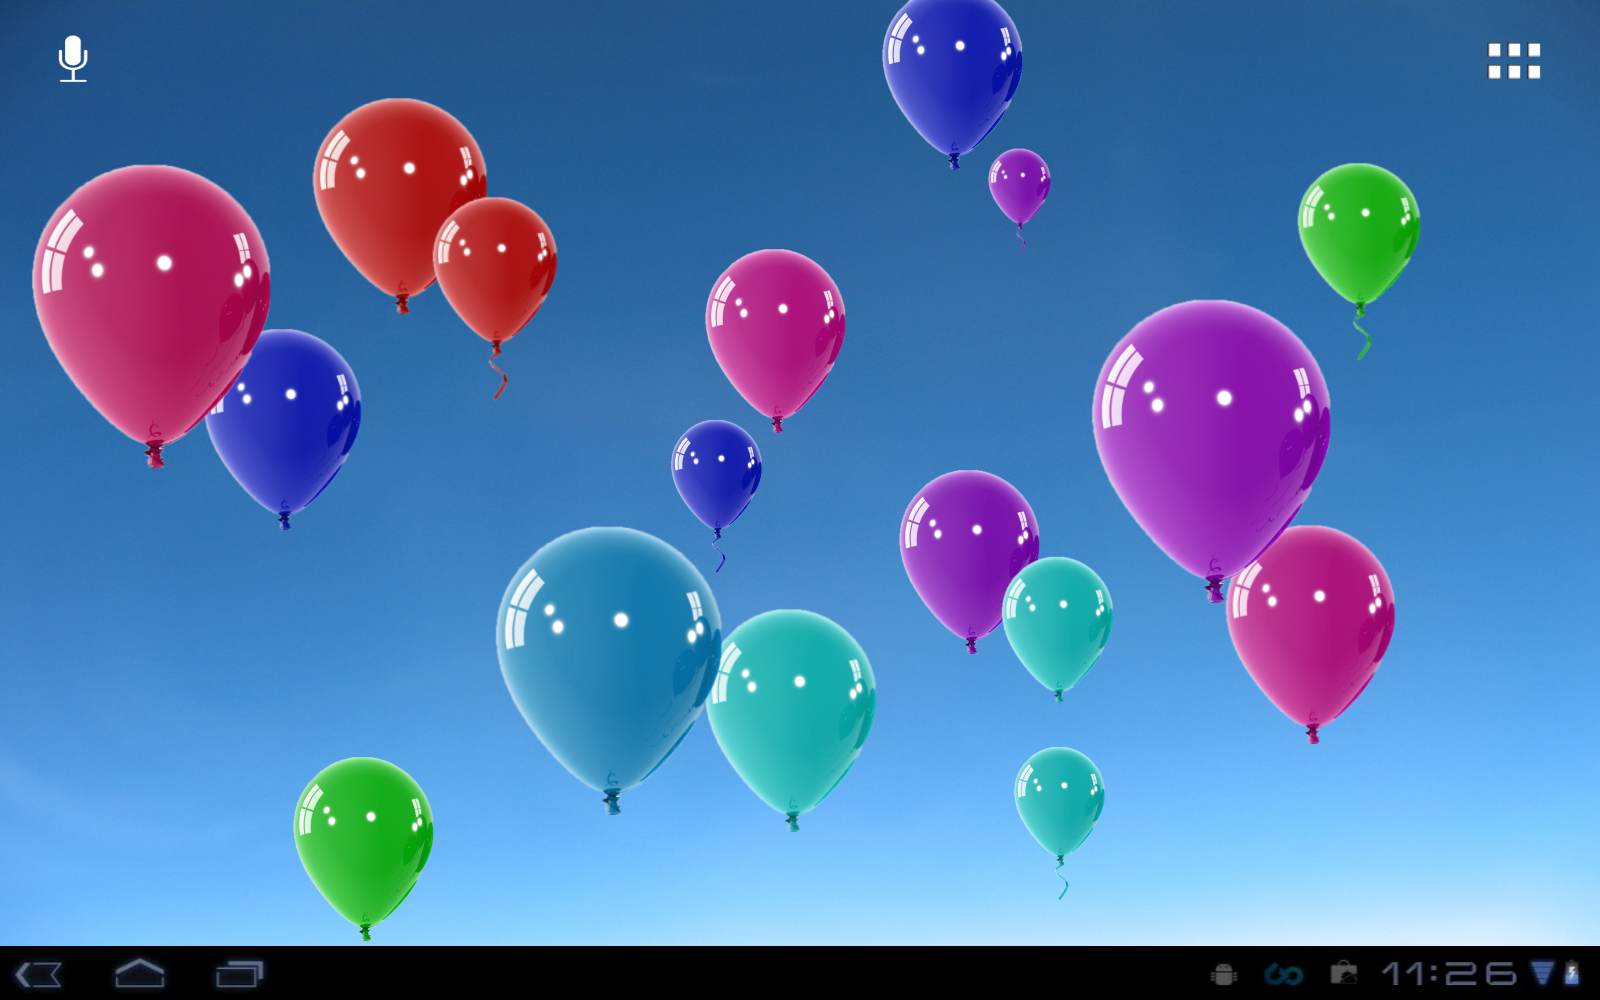 balloons live wallpaper - google play store revenue & download